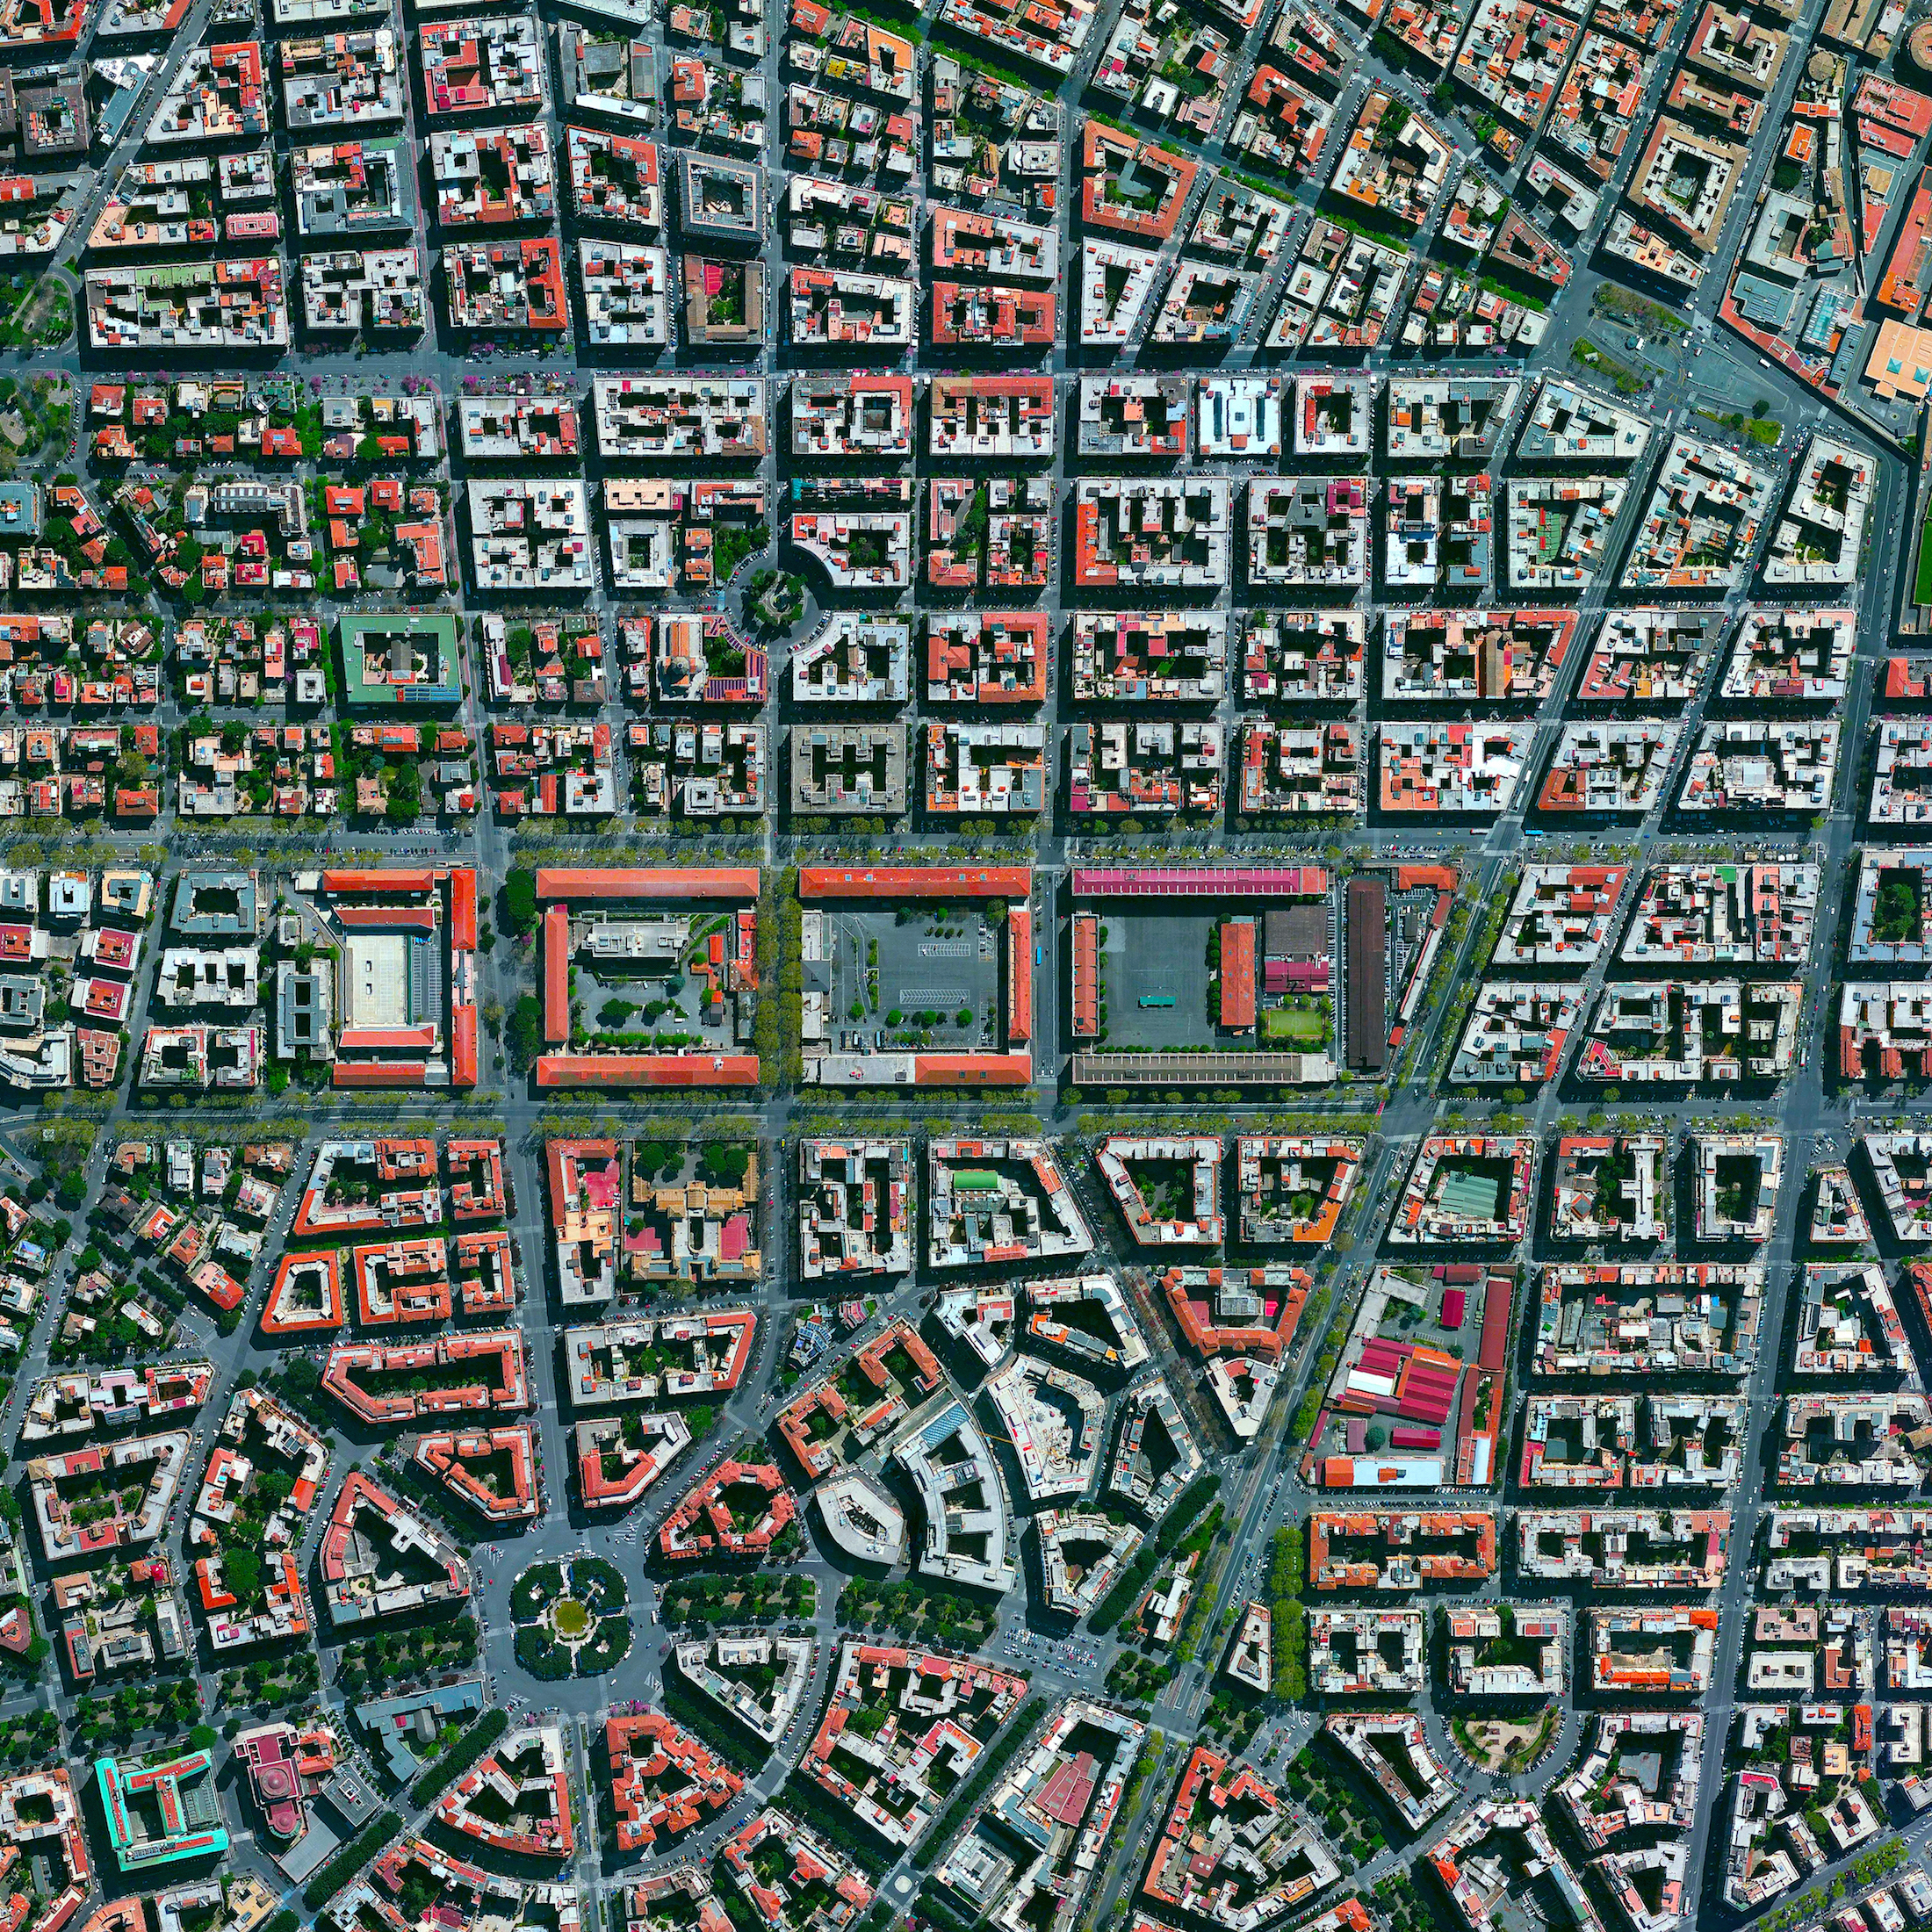 2/9/2016   Prati   Rome, Italy  41.9111647,12.460427    Prati is a neighborhood located in center of Rome, Italy. The area borders the Vatican and contains the Via Cola di Rienzo, one of the most famous shopping streets in the entire city.